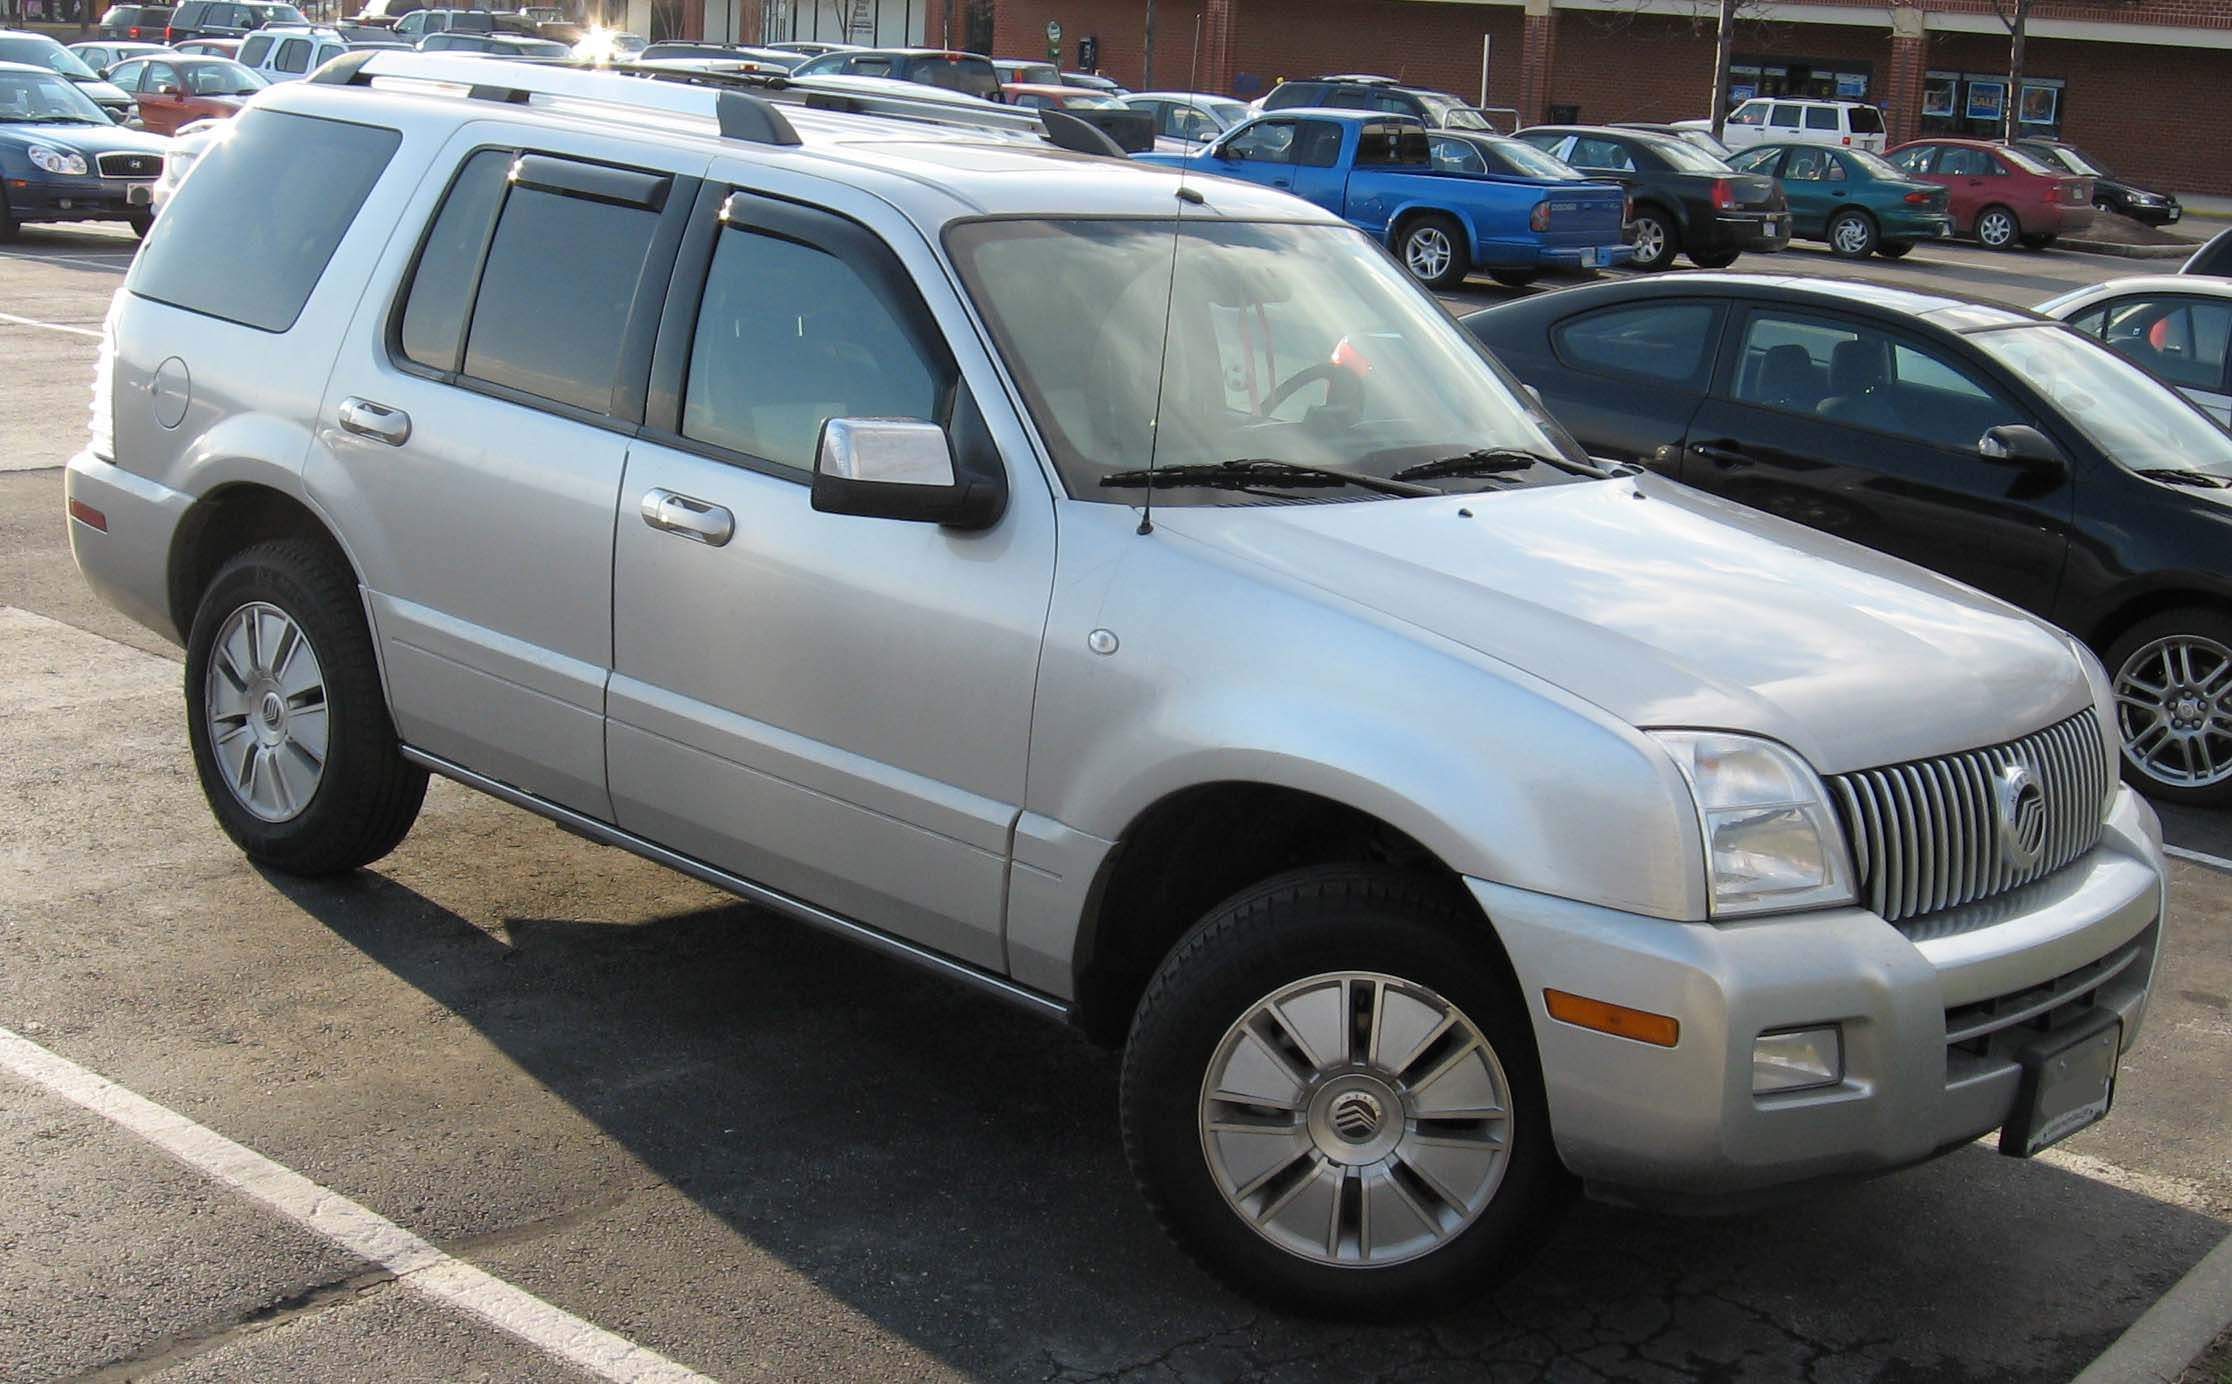 1997 Mercury Mountaineer Specs 2007 Trailer Wiring Pictures Information And Auto 2232x1384